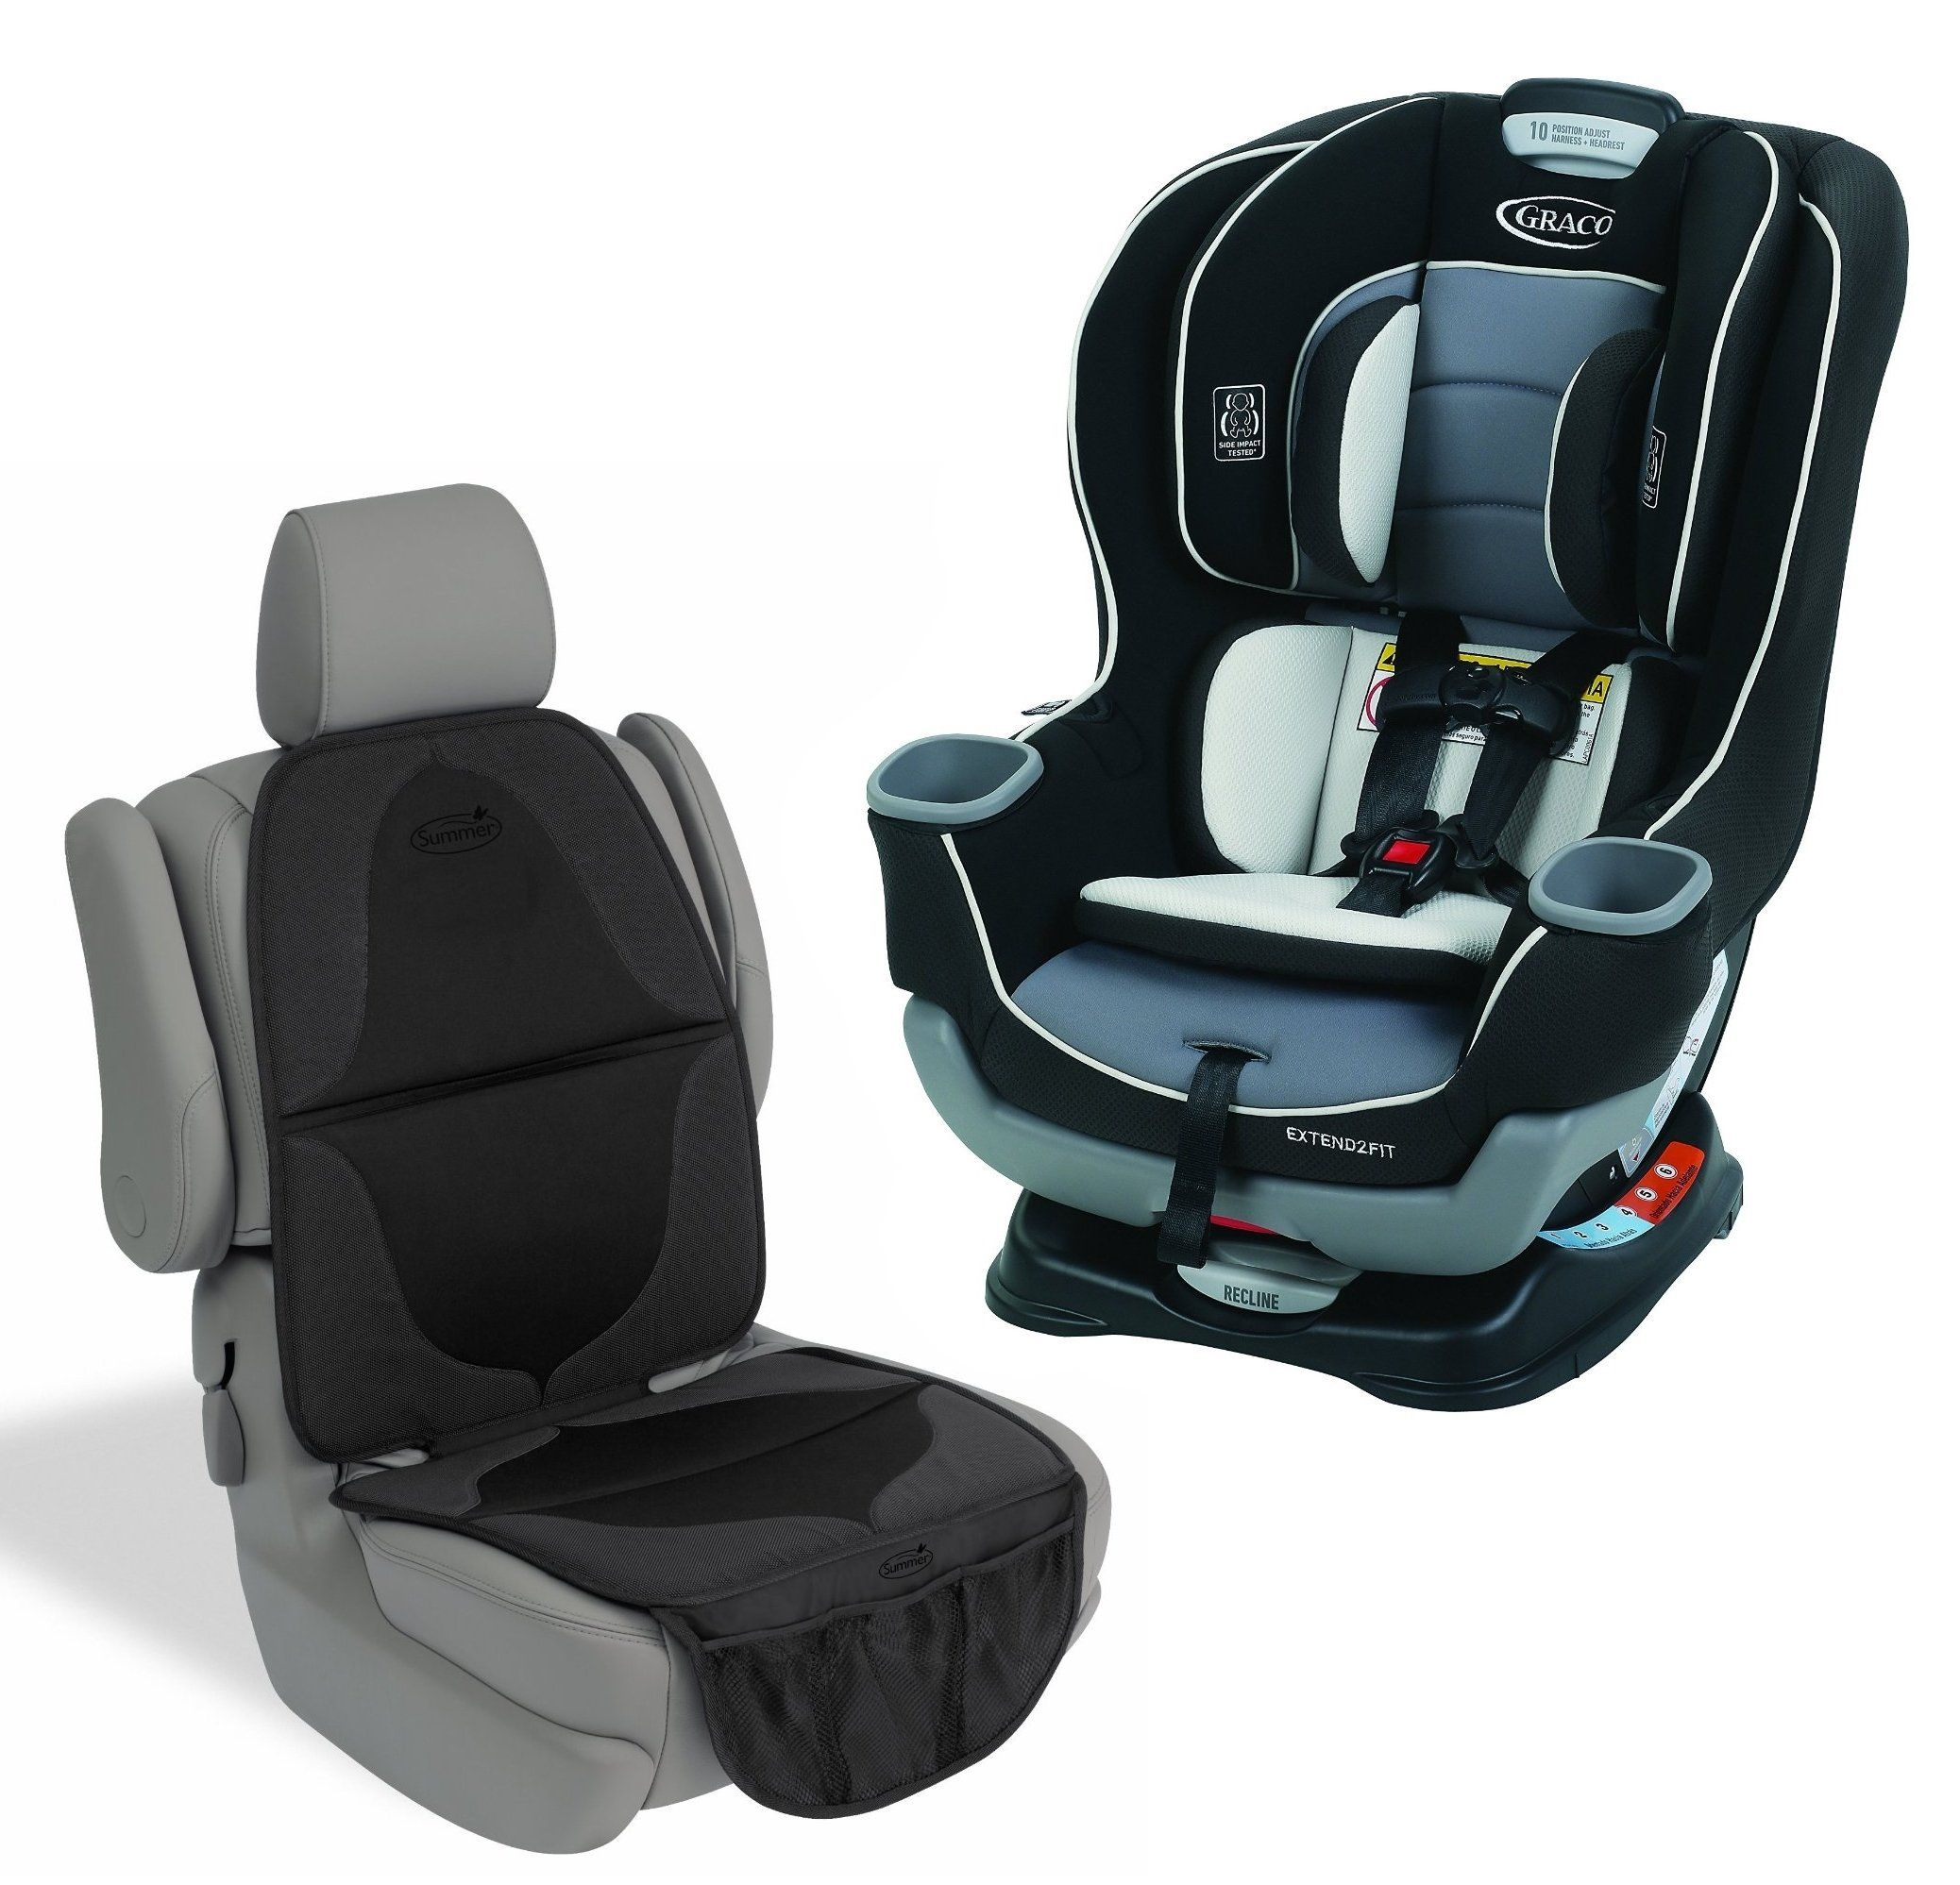 Graco Extend2Fit Convertible Car Seat With Mat Gotham Helps Protect Rear Facing